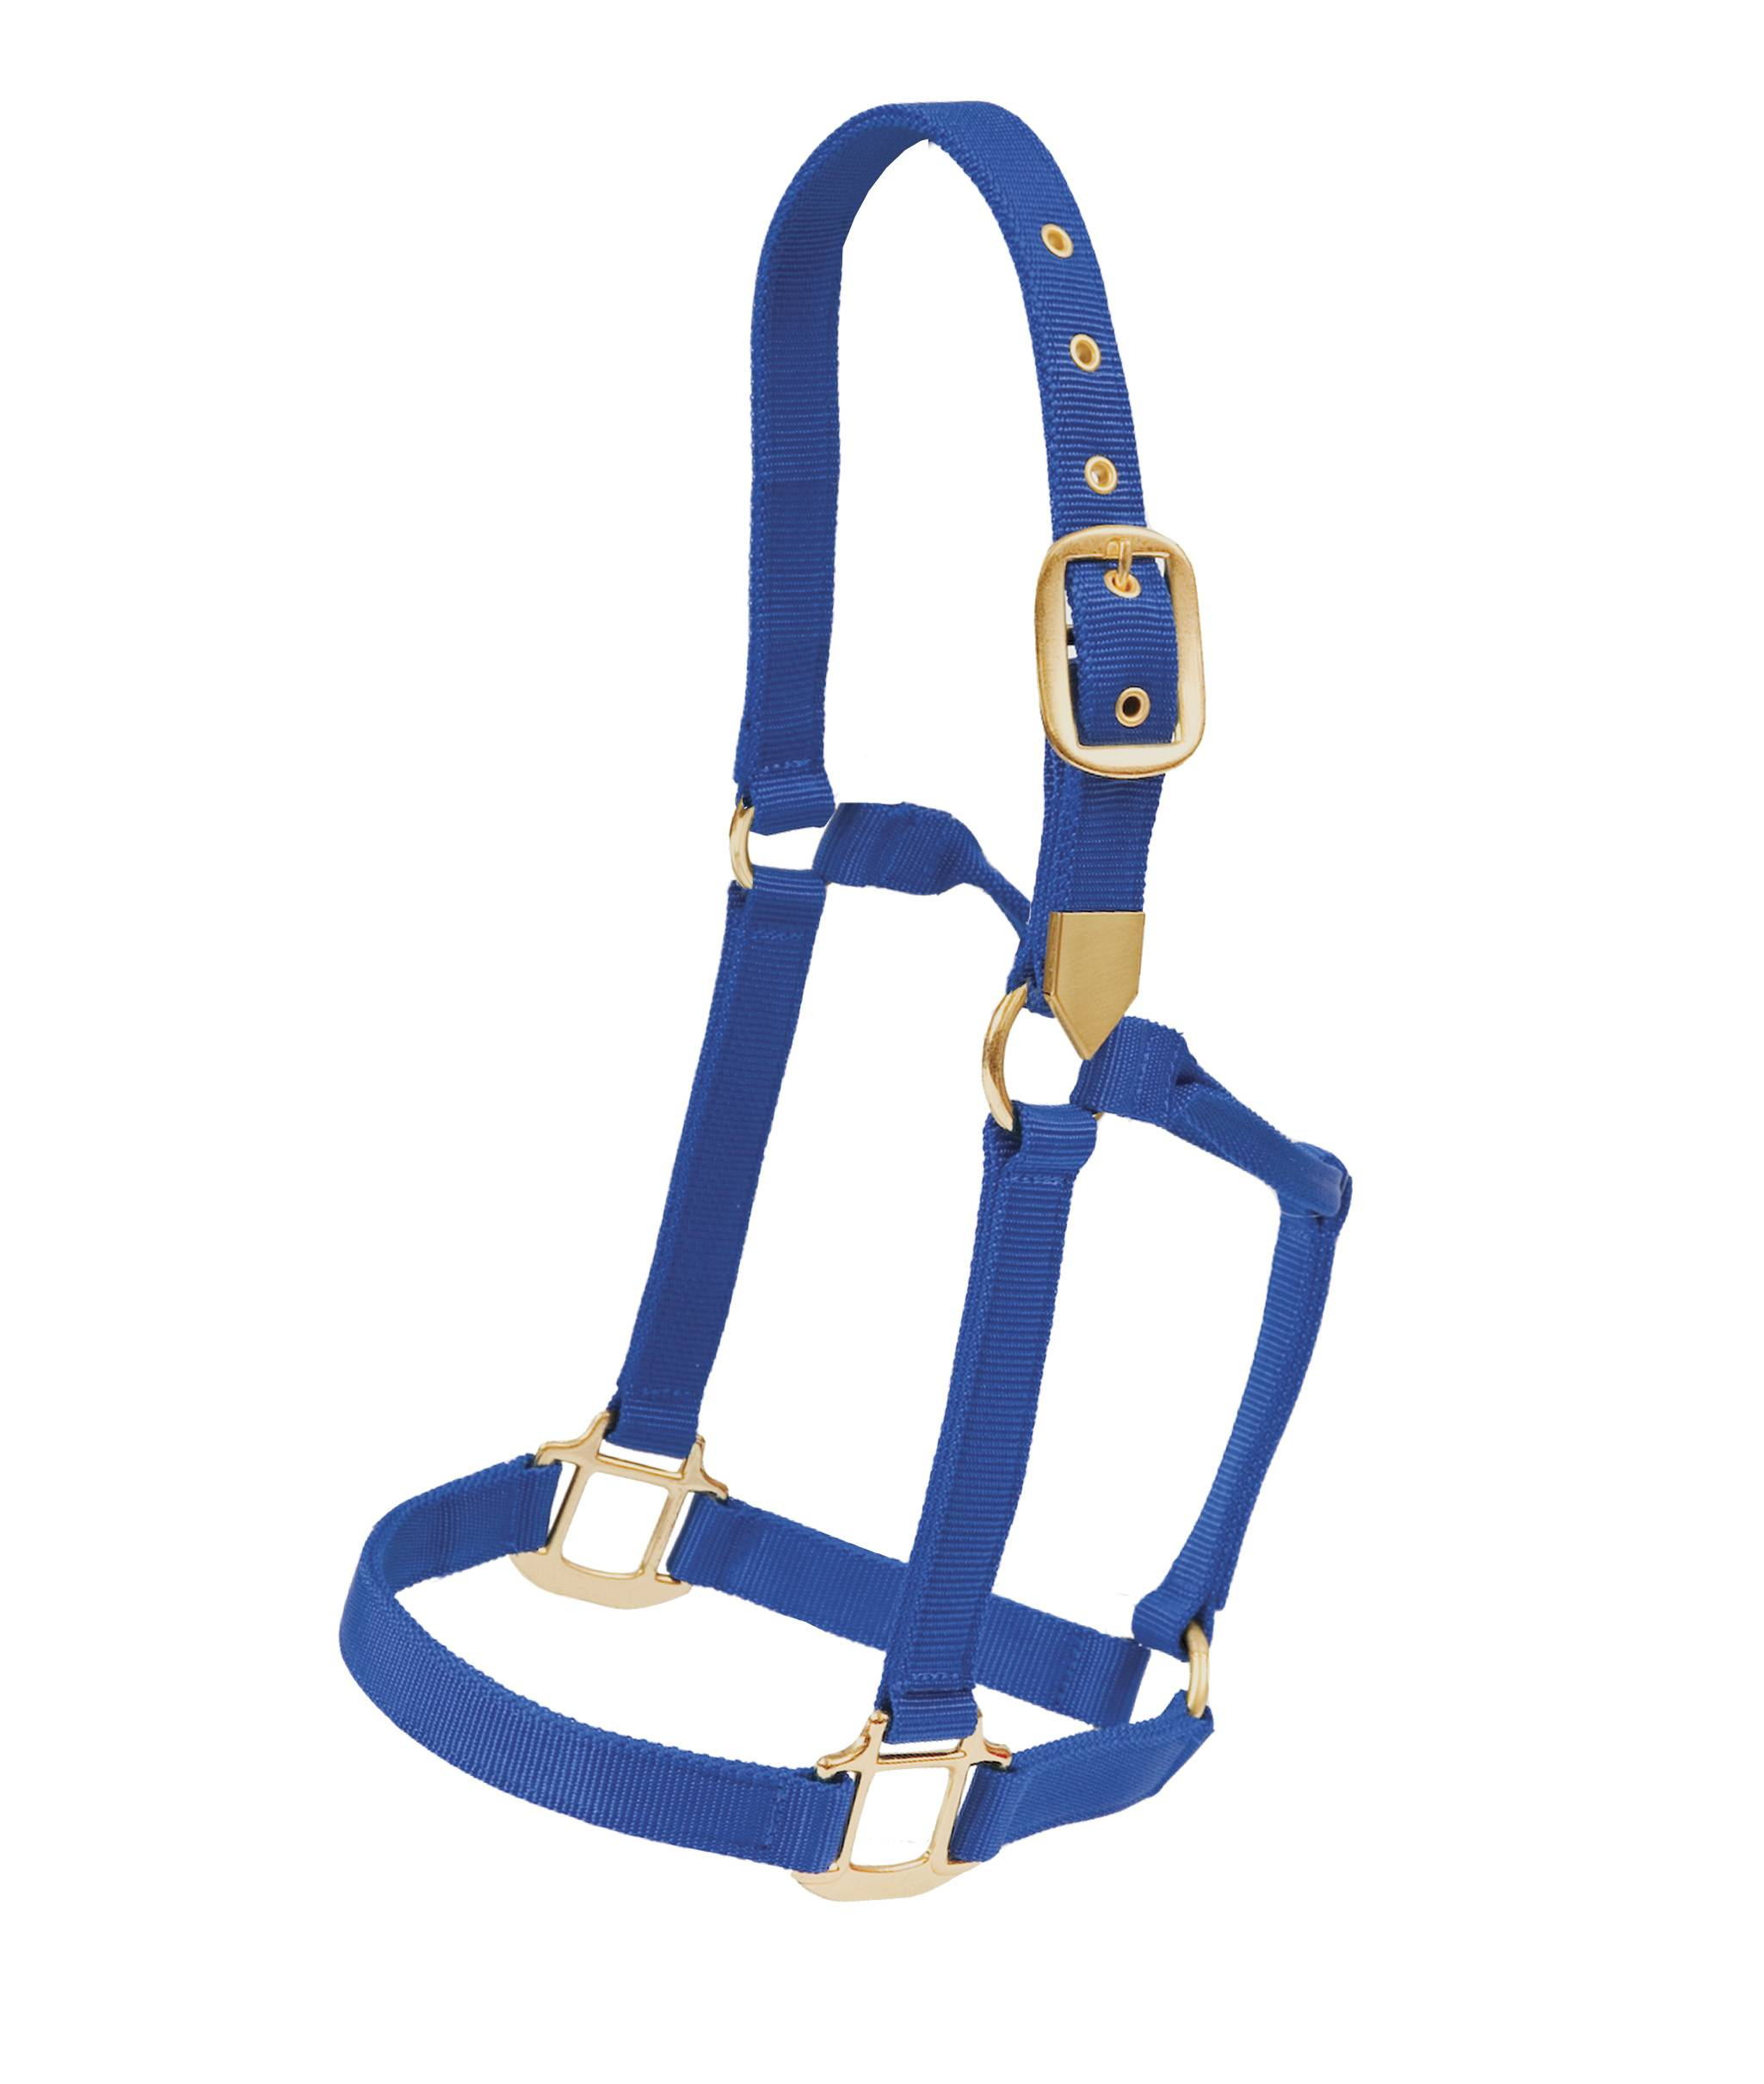 Colorado Saddlery White Stallion Hi Country Nylon Halter